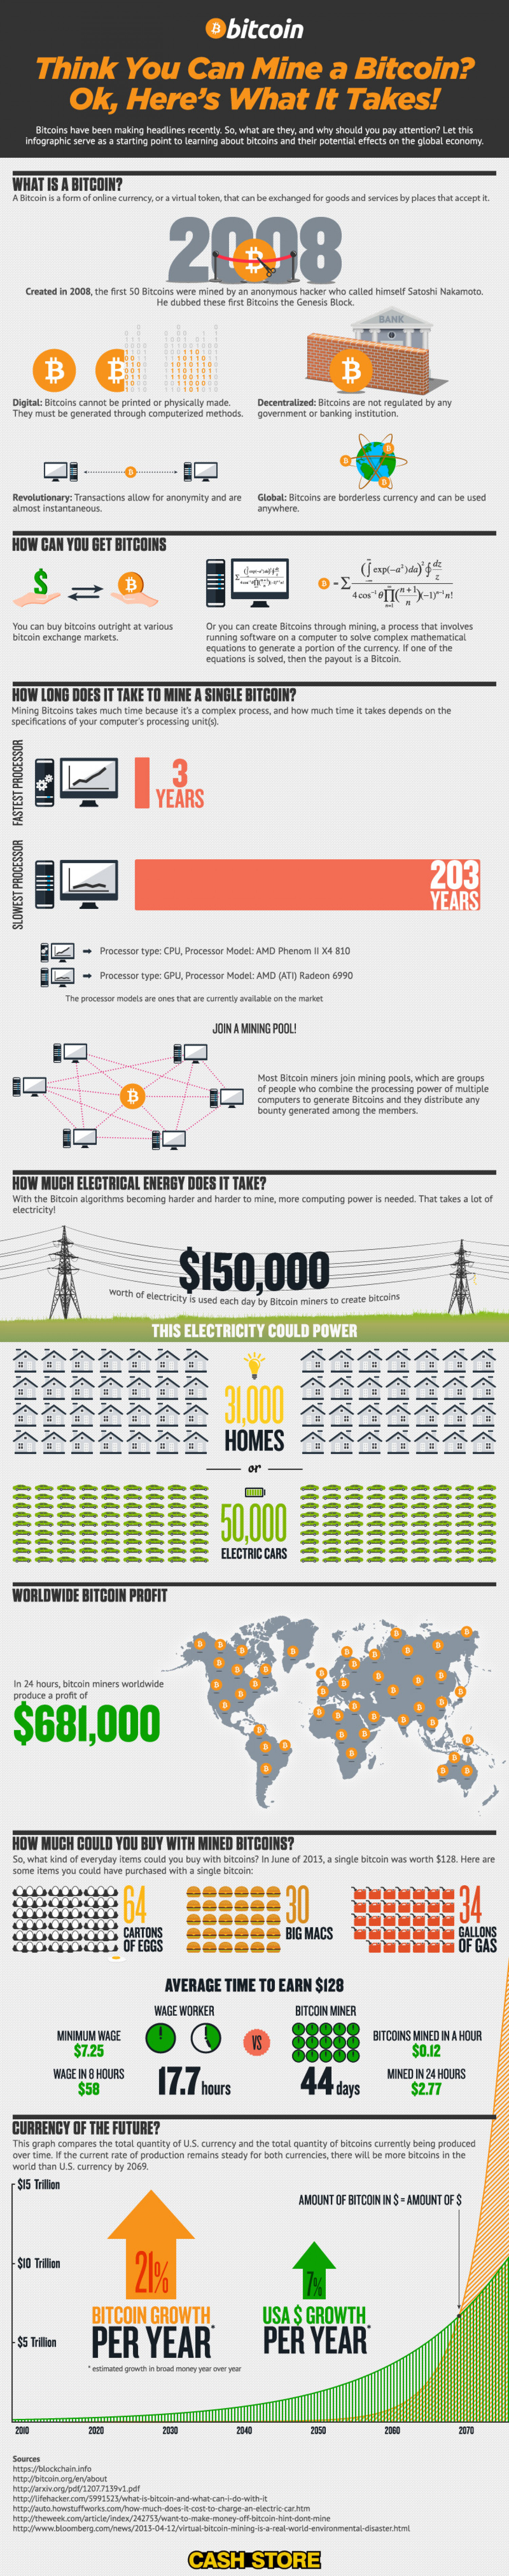 Think you can mine a Bitcoin? Infographic